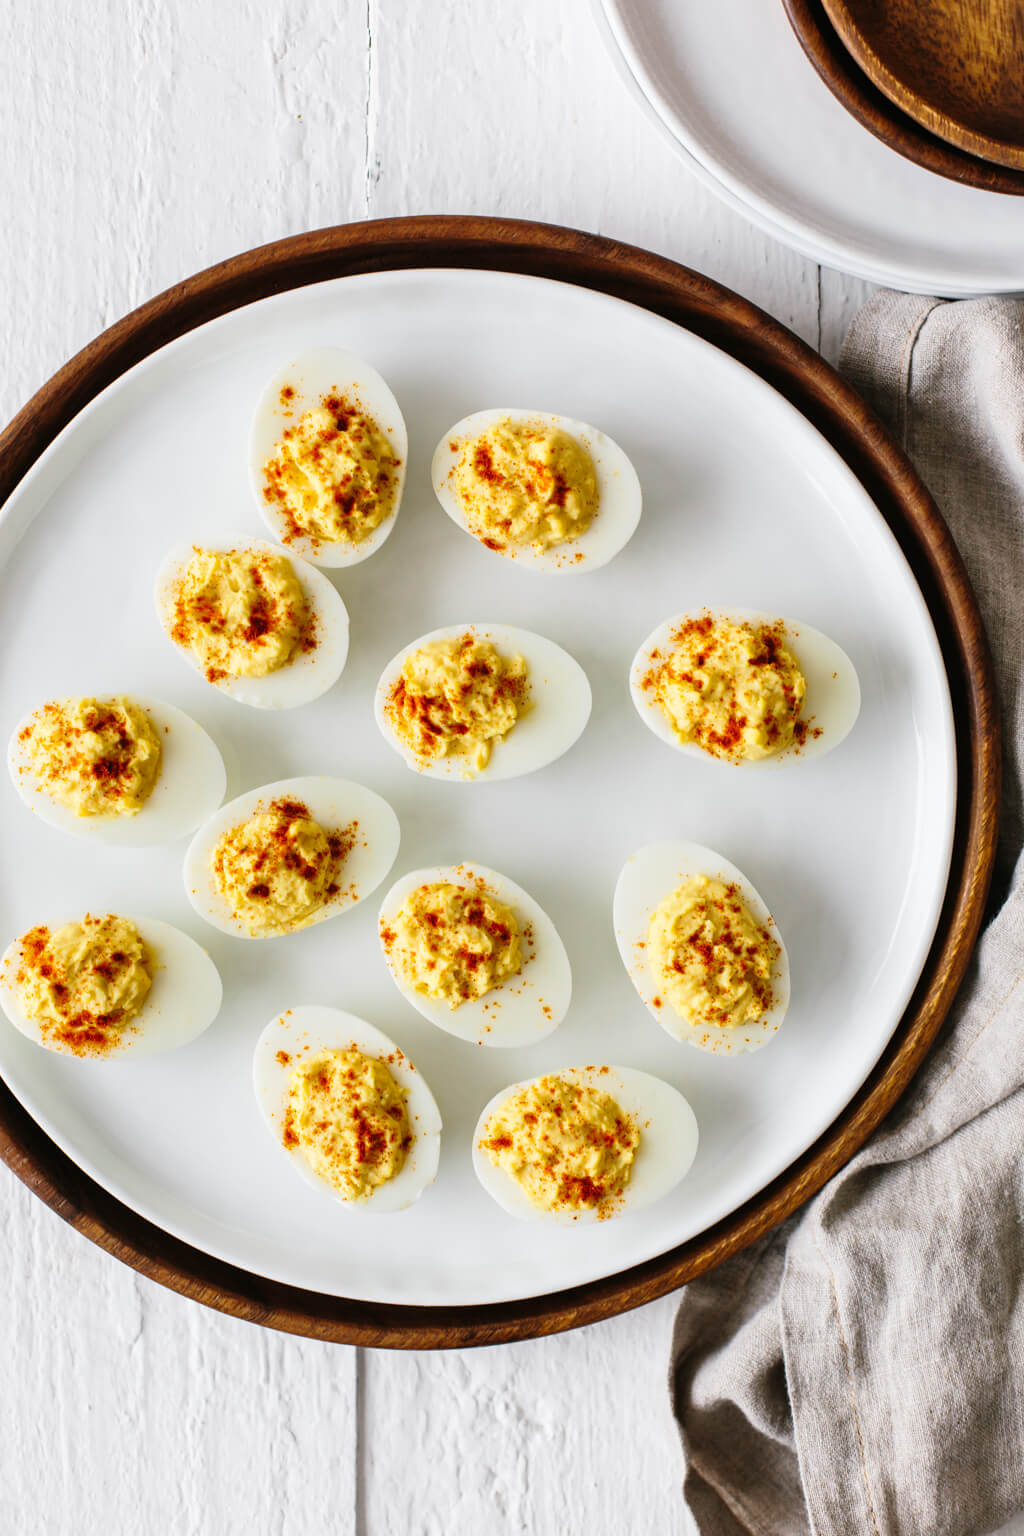 One dozen deviled eggs on a white plate.